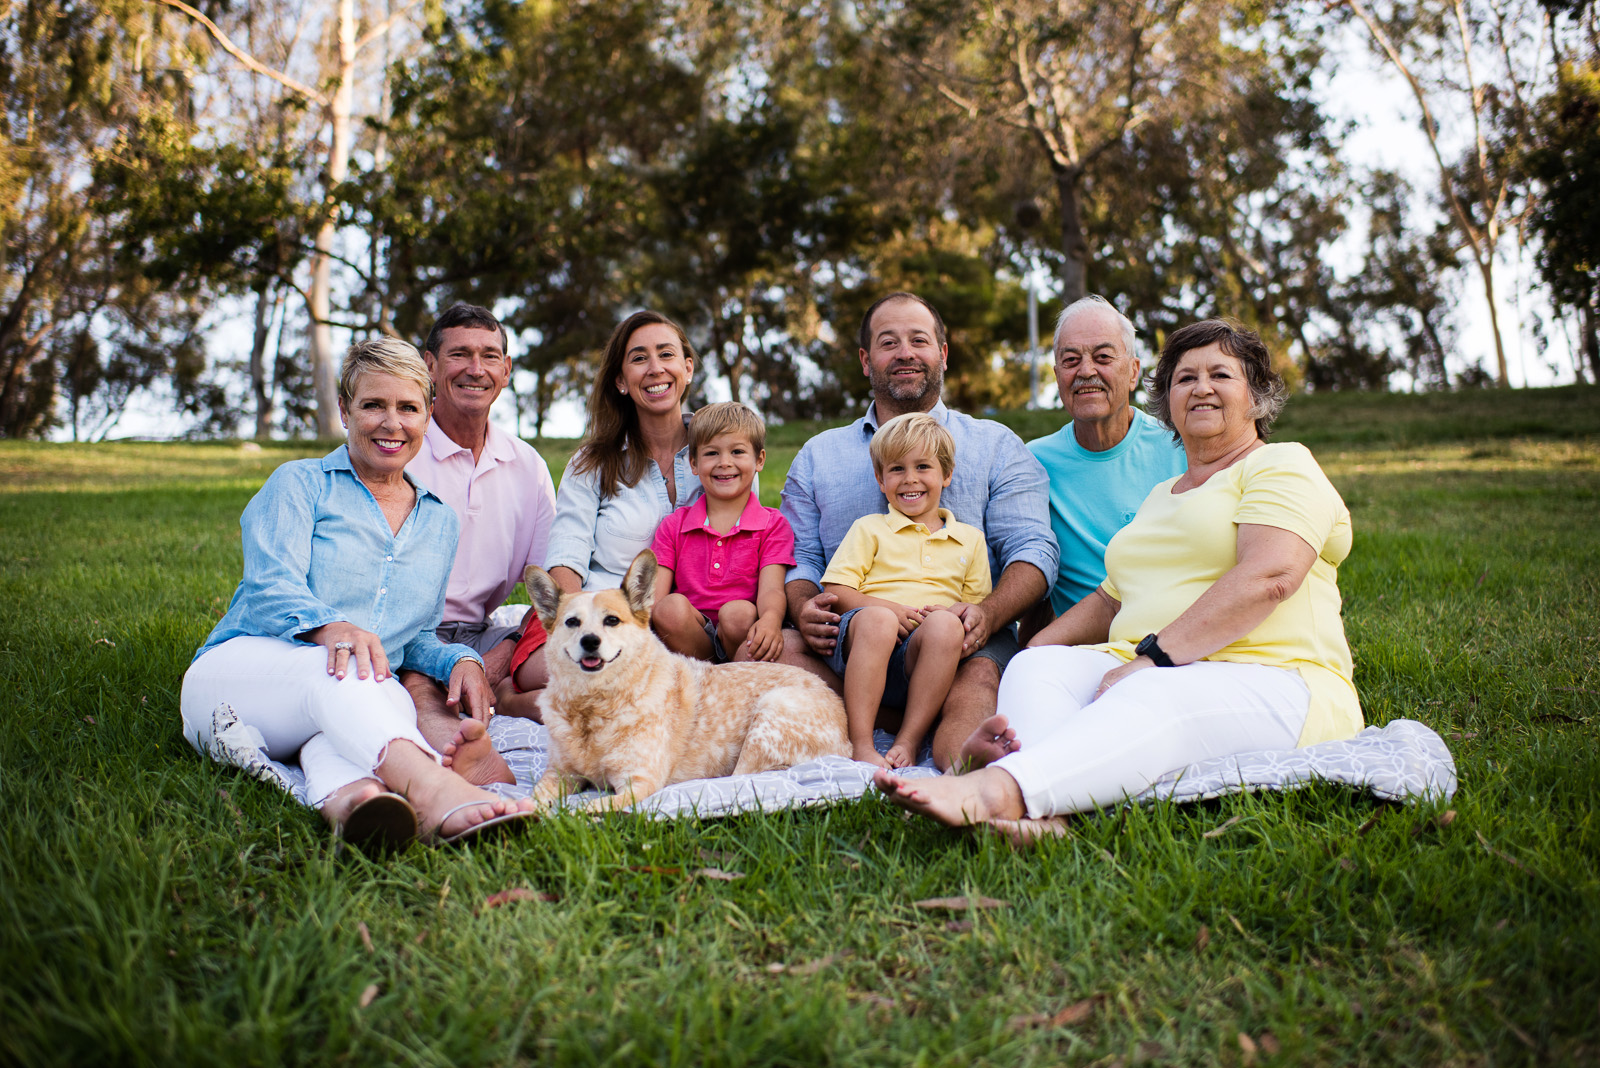 Reunion Family Session - 8 or more people, 90 minutes, 50 photo gallery, All photographs in gallery as a digital download — $800